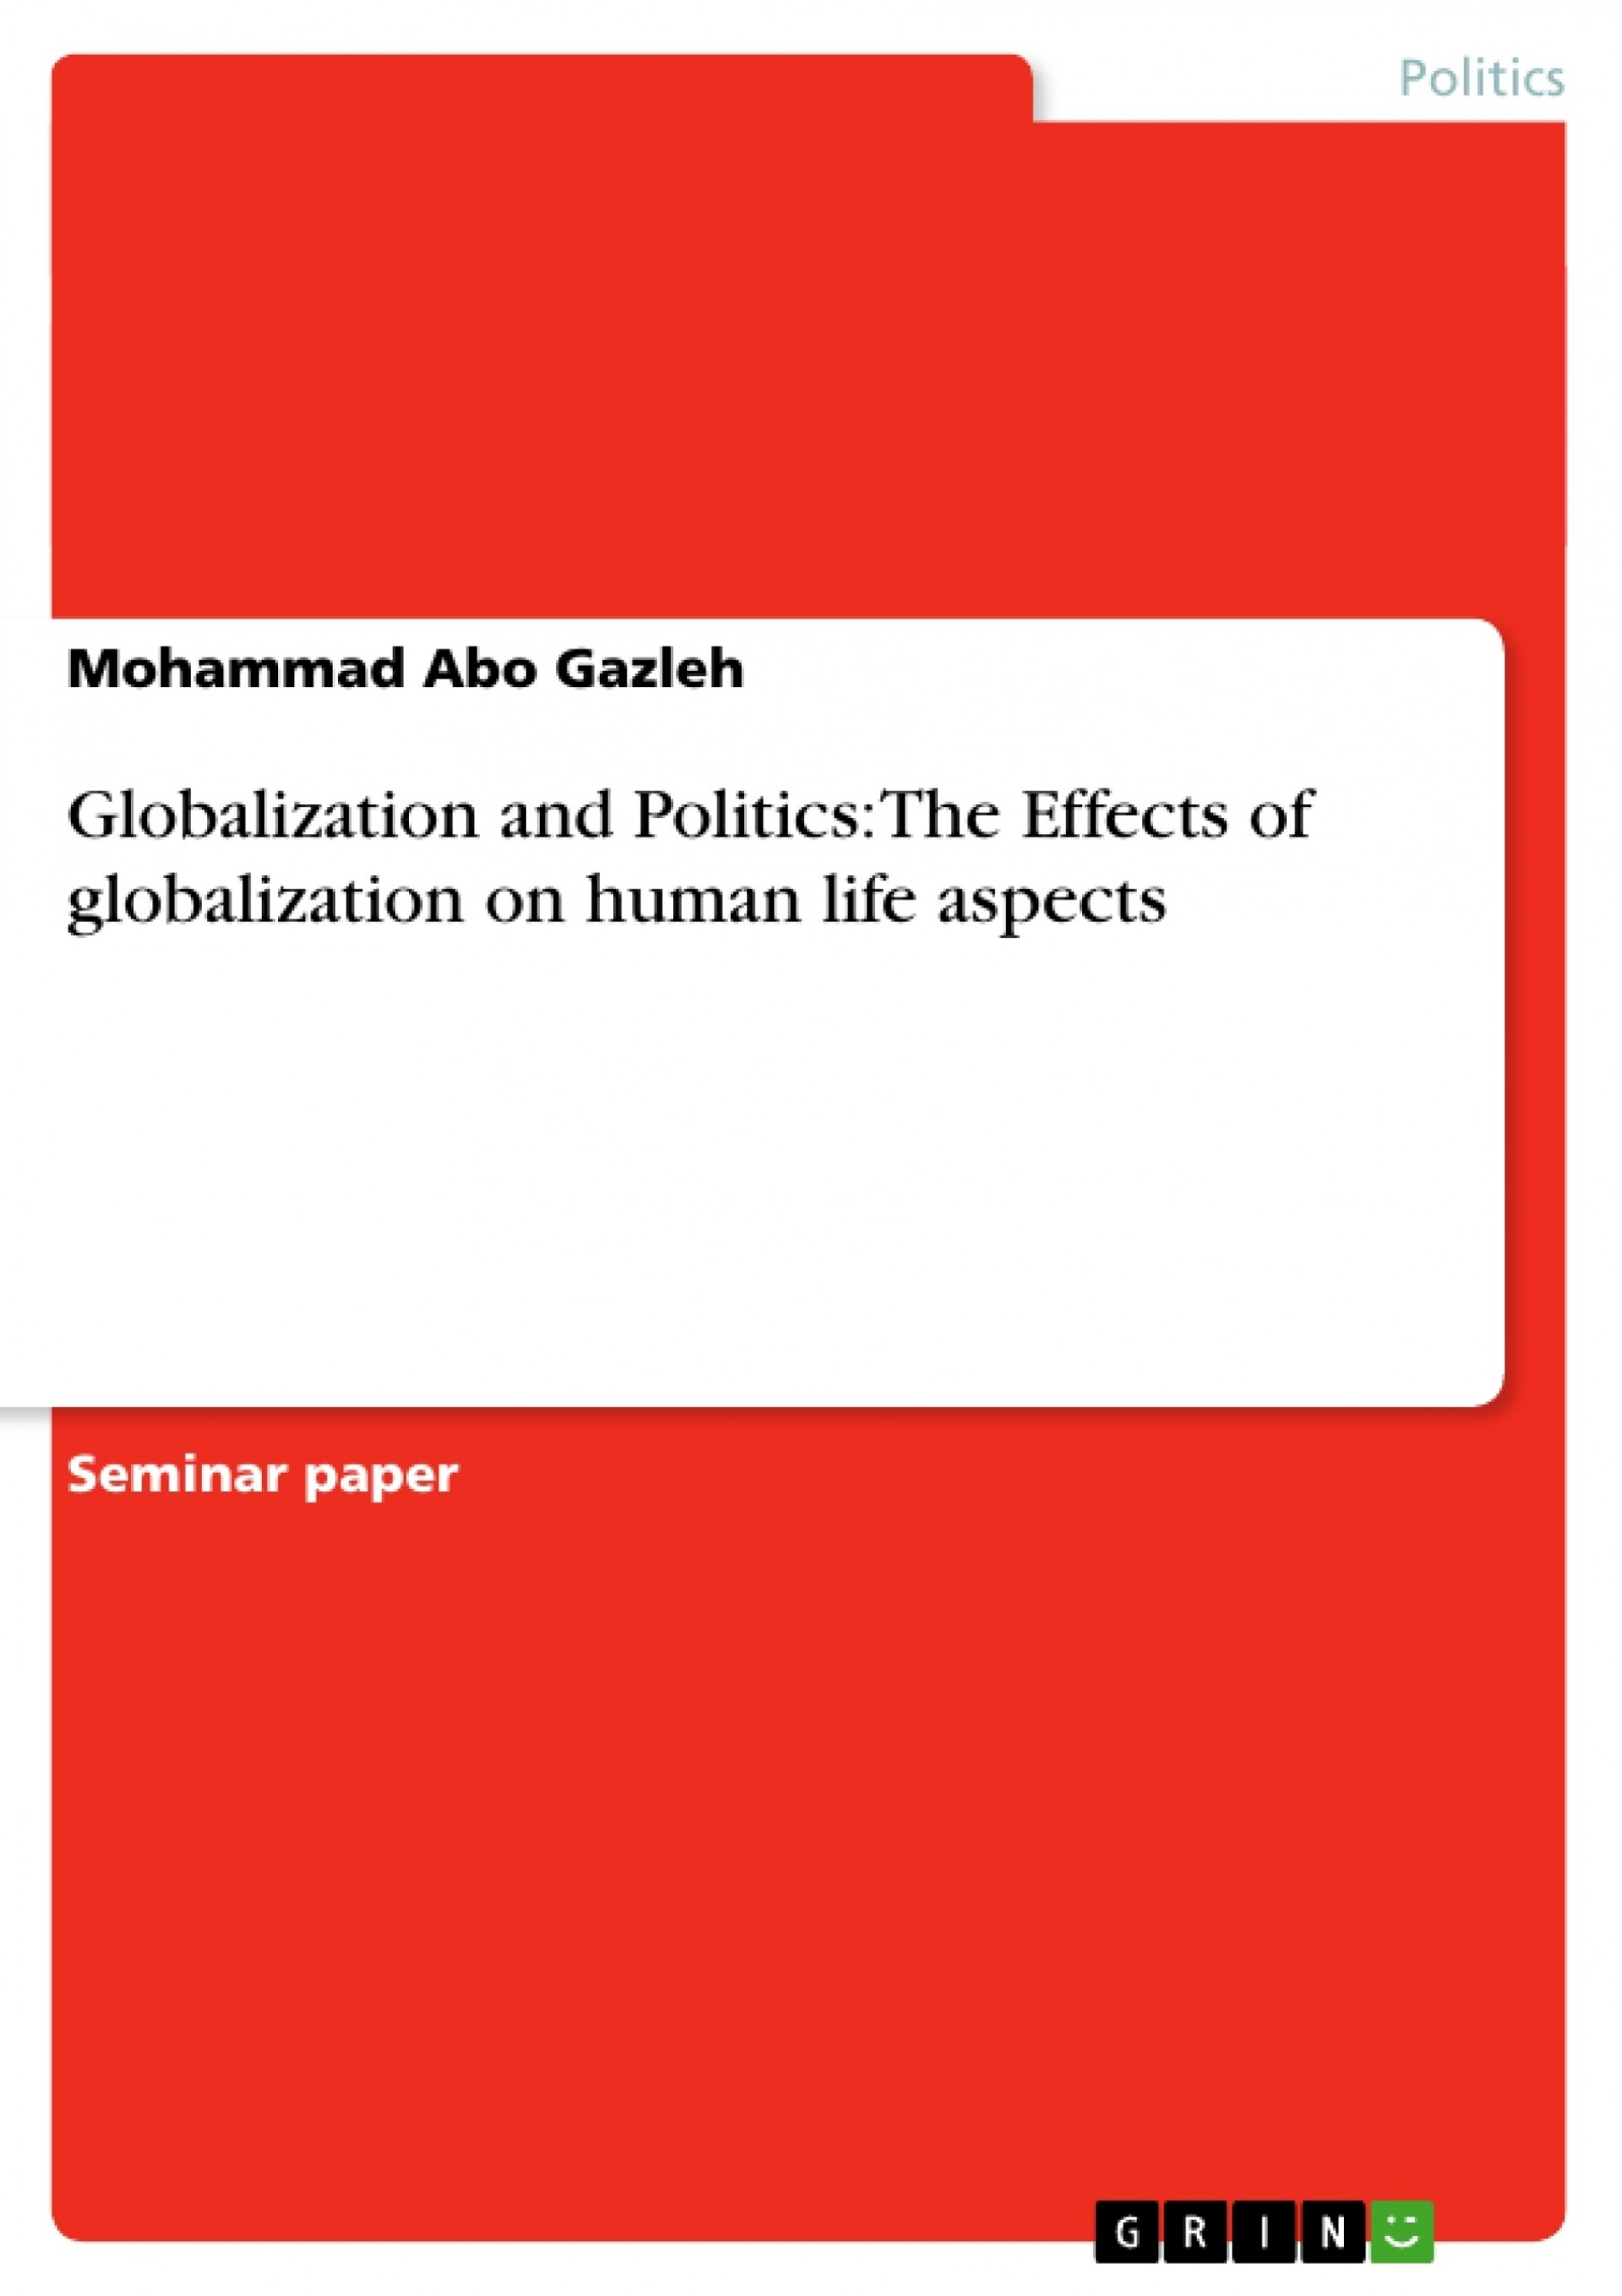 013 110500 0 Business Topics For Research Paper Magnificent Globalization 1920